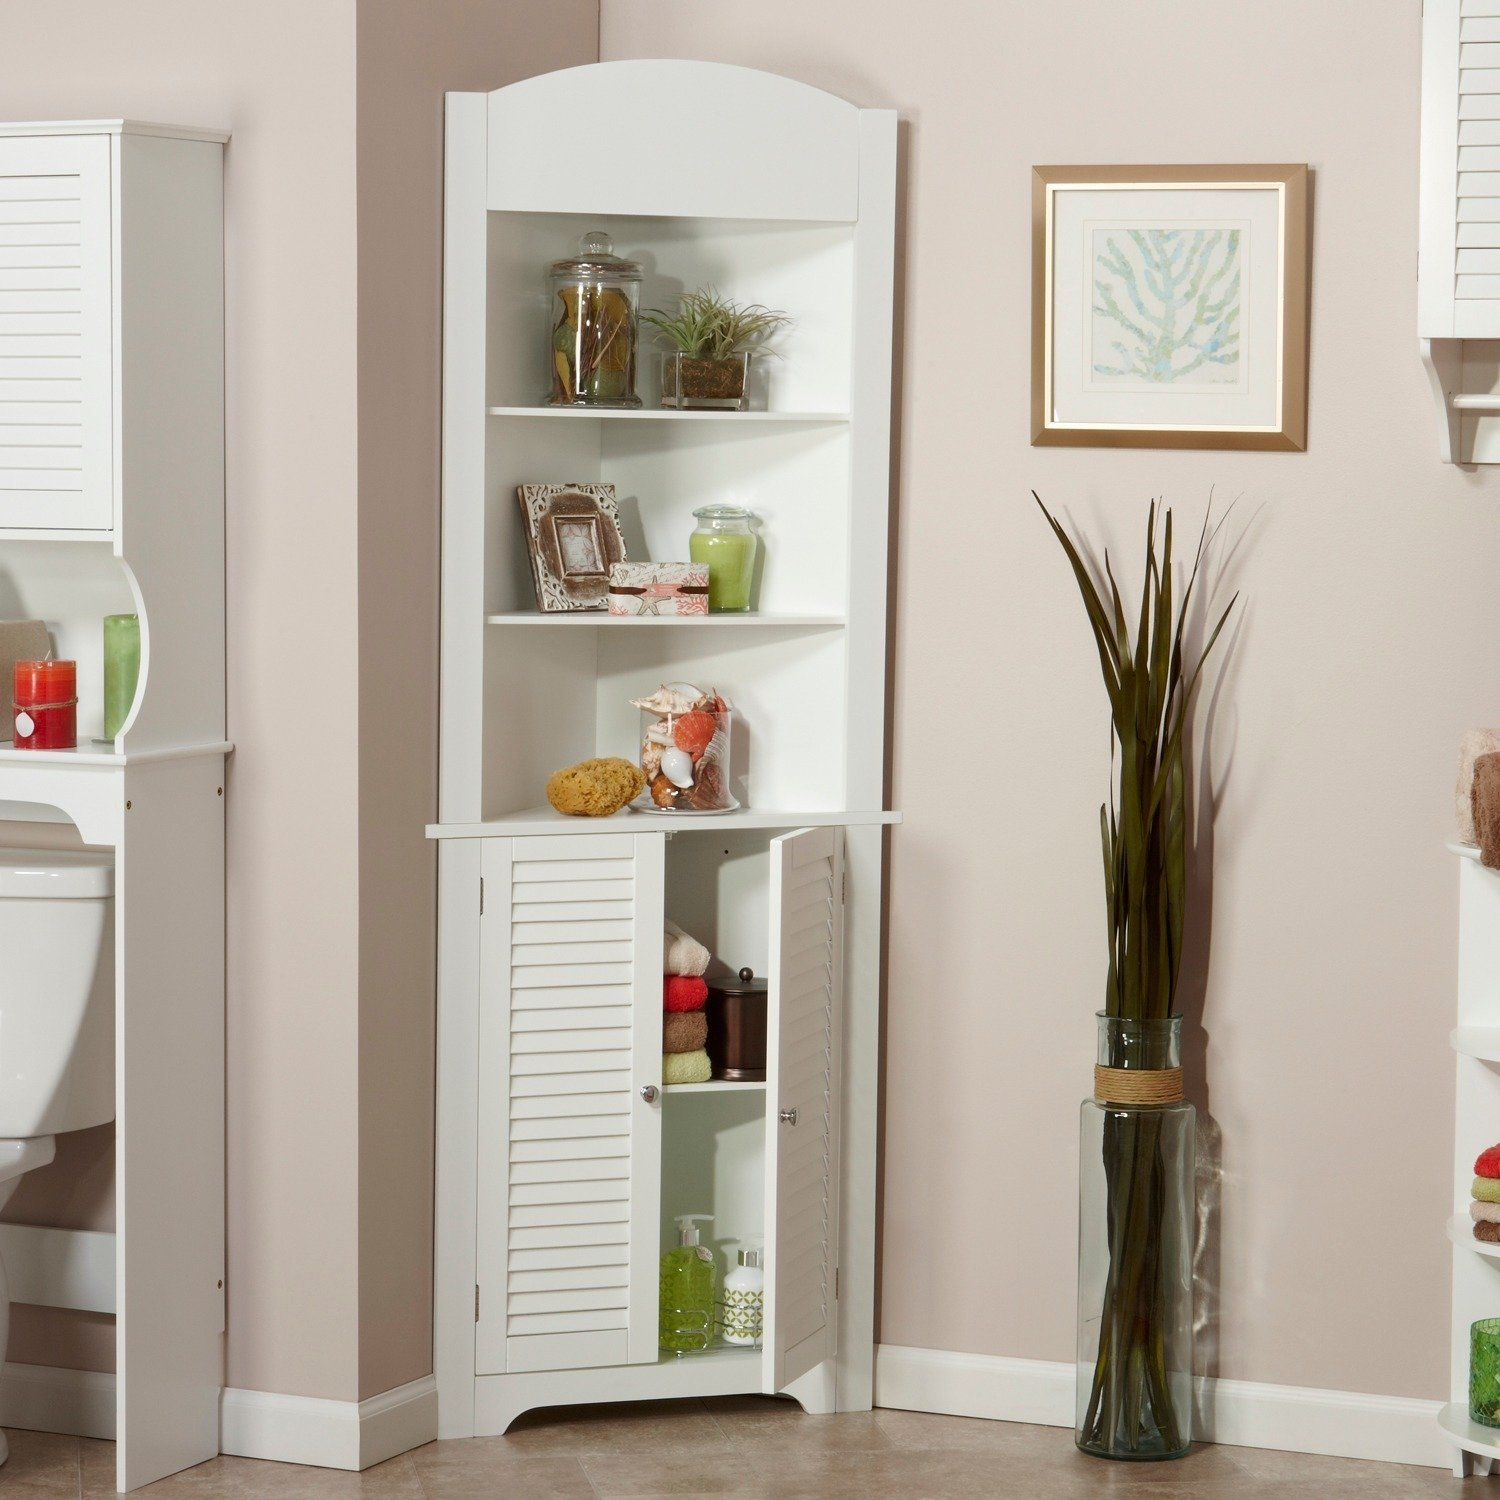 Tall Corner Etagere with White Shutter Door Corner CabinetRoom Décor Furniture Corner Wall Cabinet Corner Storage Cabinet Corner Bathroom Cabinet Corner Cabinet Shelf Corner Kitchen Cabinet (White)